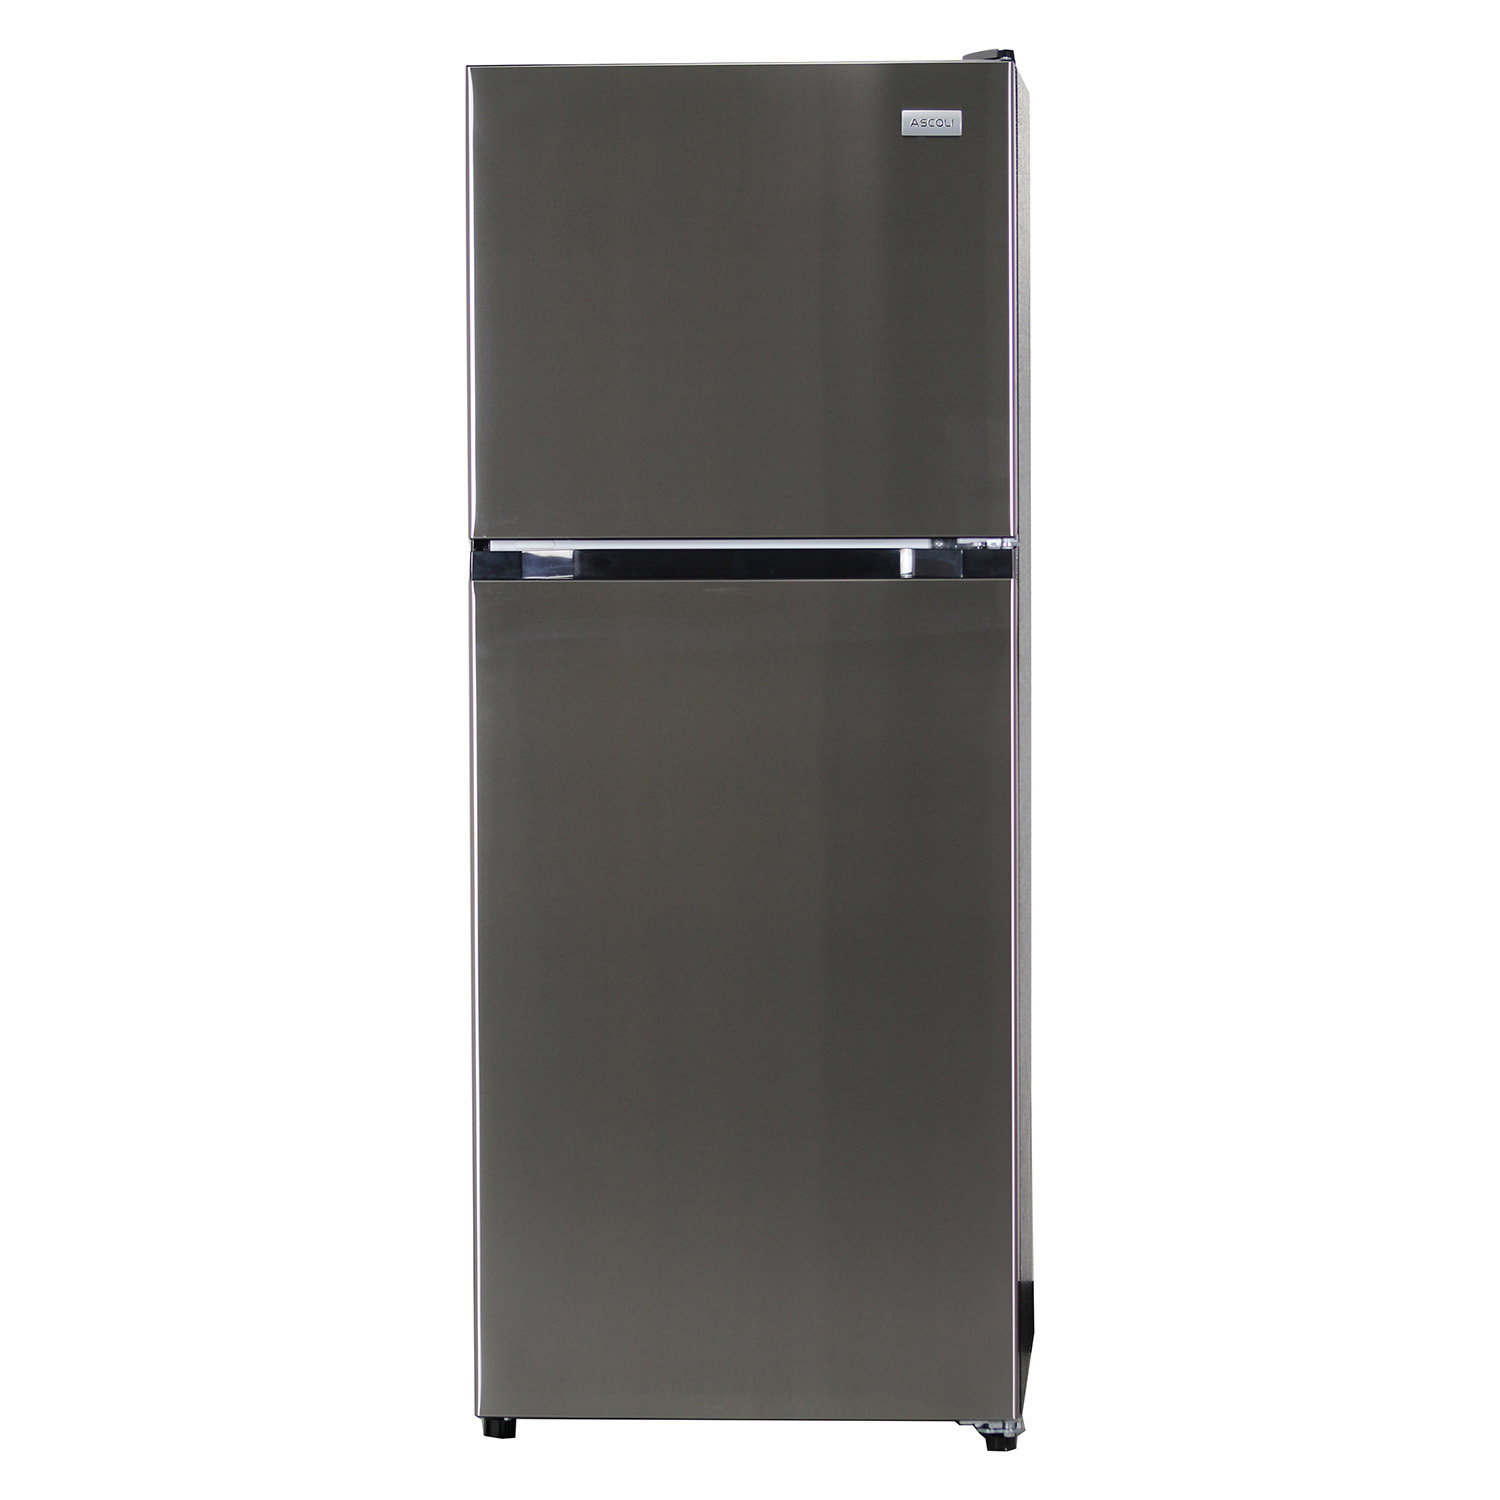 ATFR 1050 ES No Frost <br> Top Mounted Refrigerator